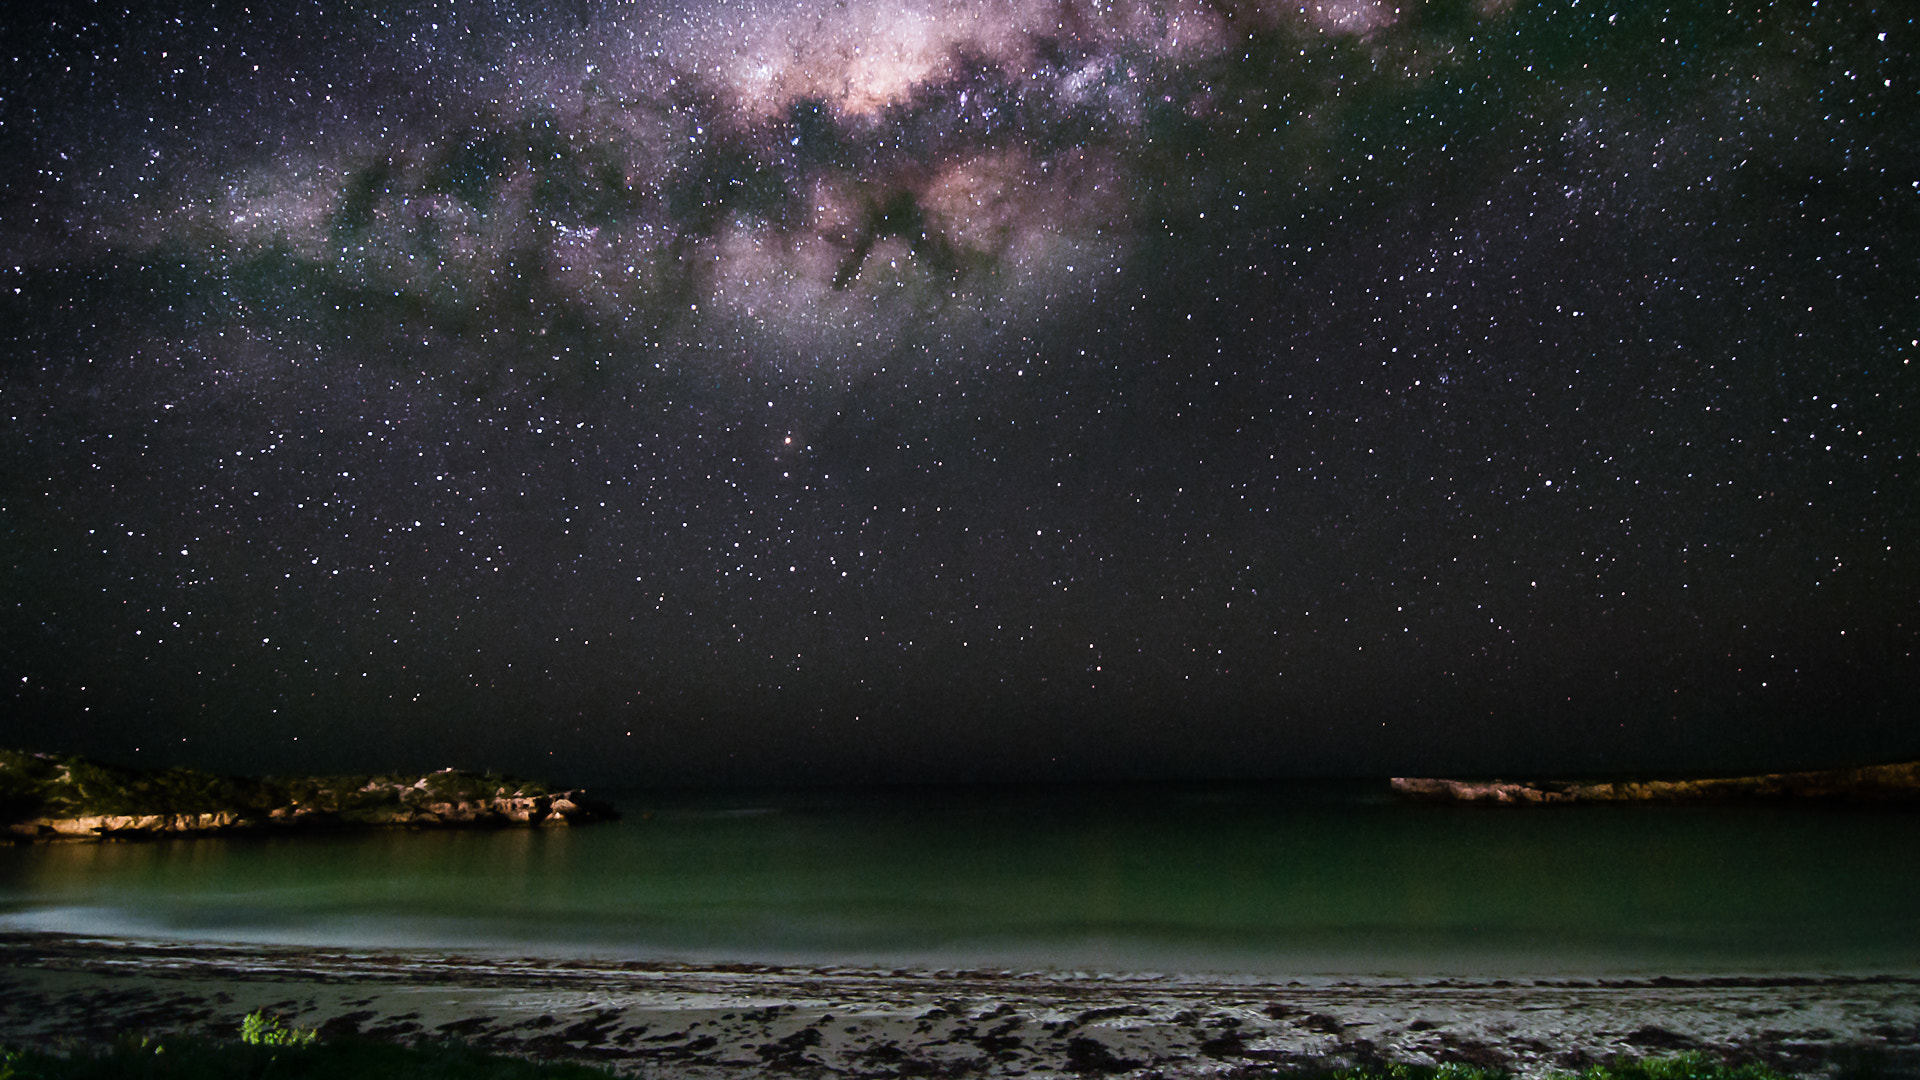 Photograph The Milky Way sets over Dynamite Bay in Greenhead, Western Australia by Rahi Varsani on 500px